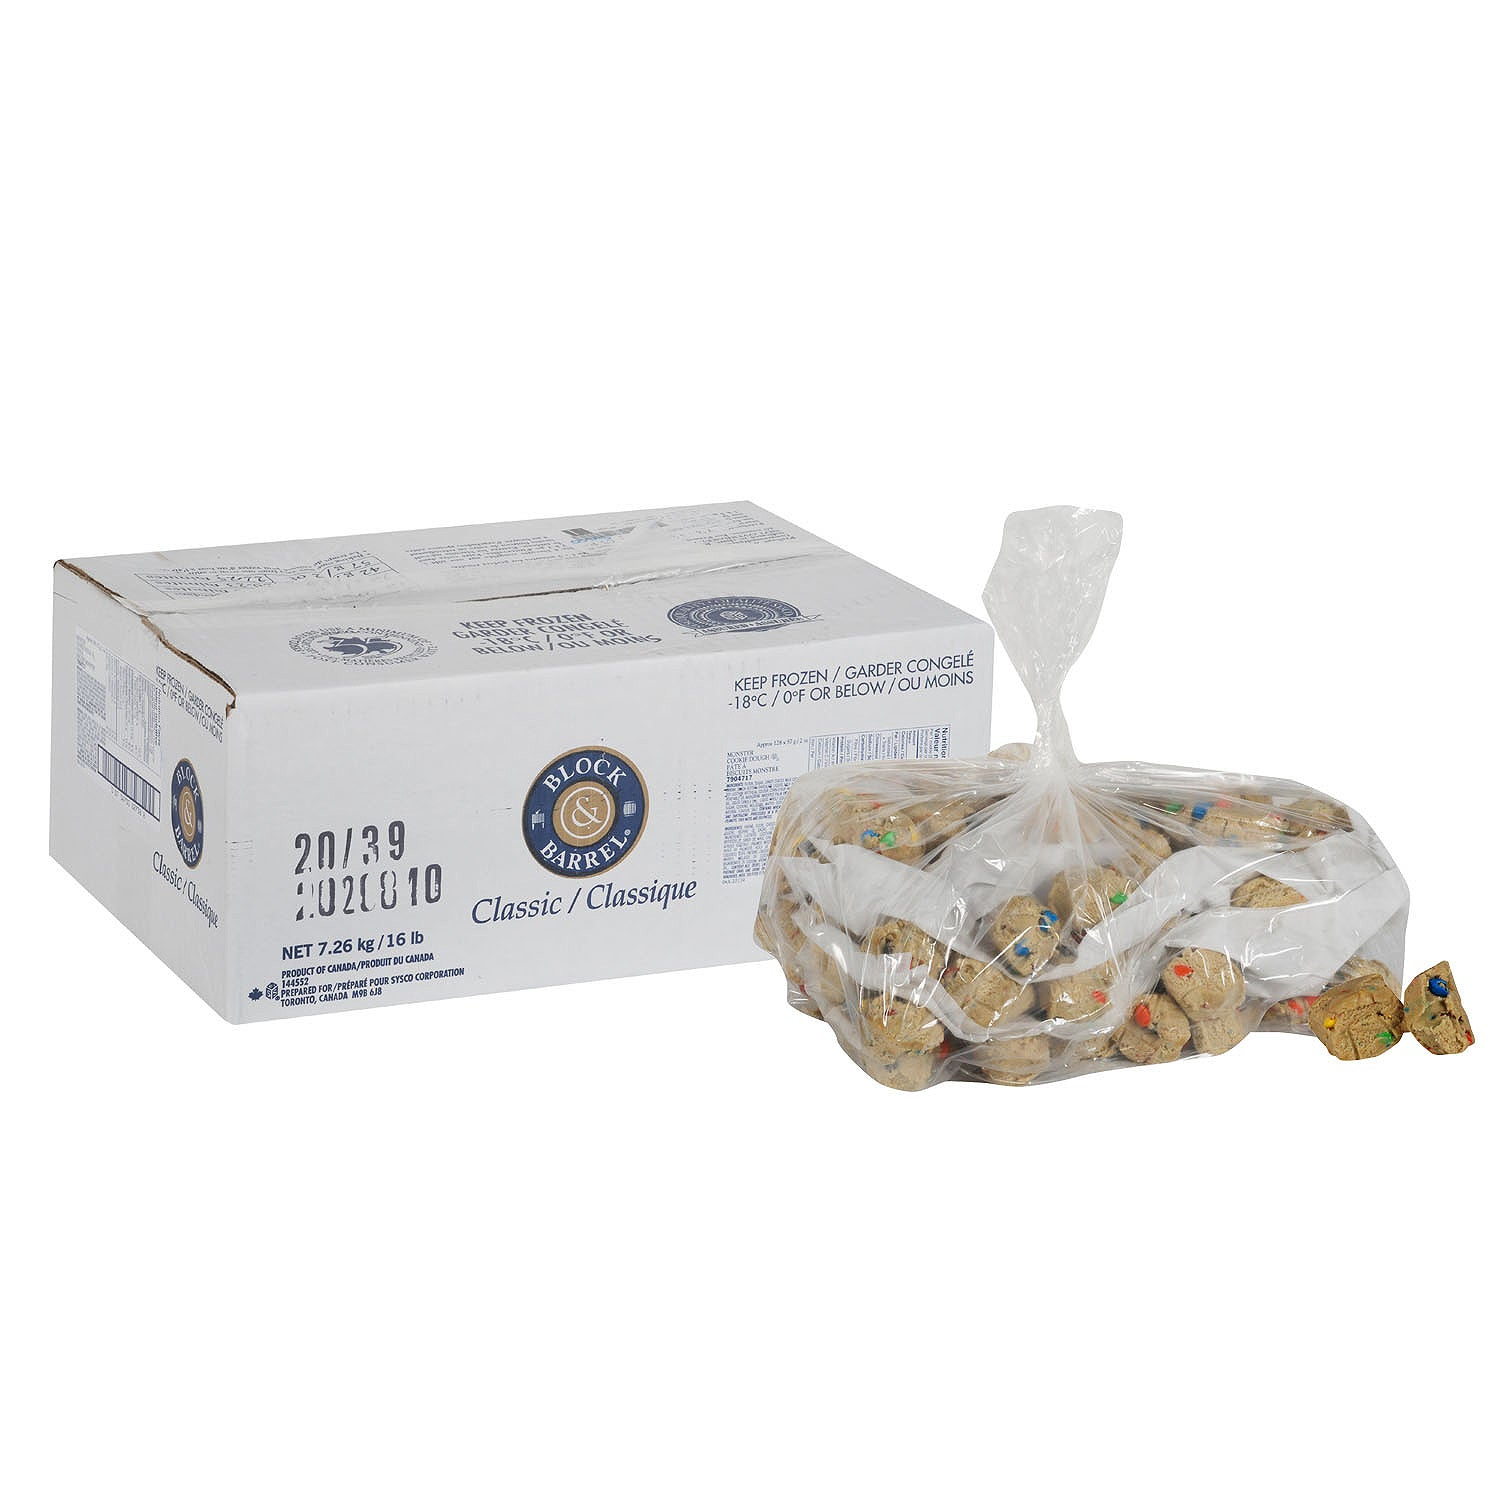 Bakers Source Frozen Monster Cookie Dough 2 oz Pre-portioned - 128 Pack [$0.37/each]